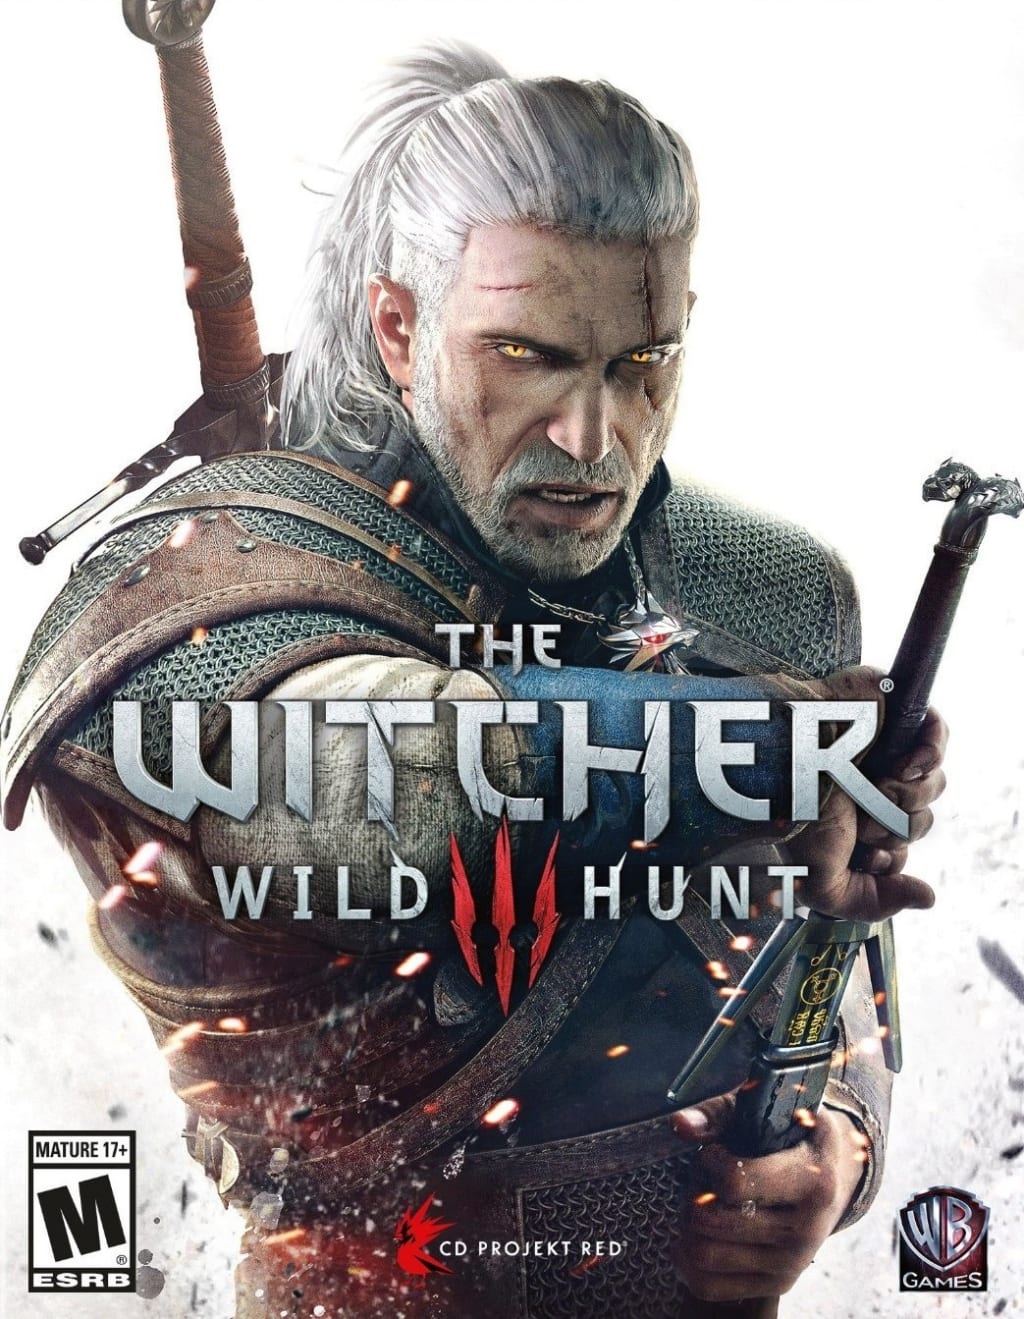 Will There Ever Be Another Game Series Like the 'Witcher 3:Wild Hunt?'